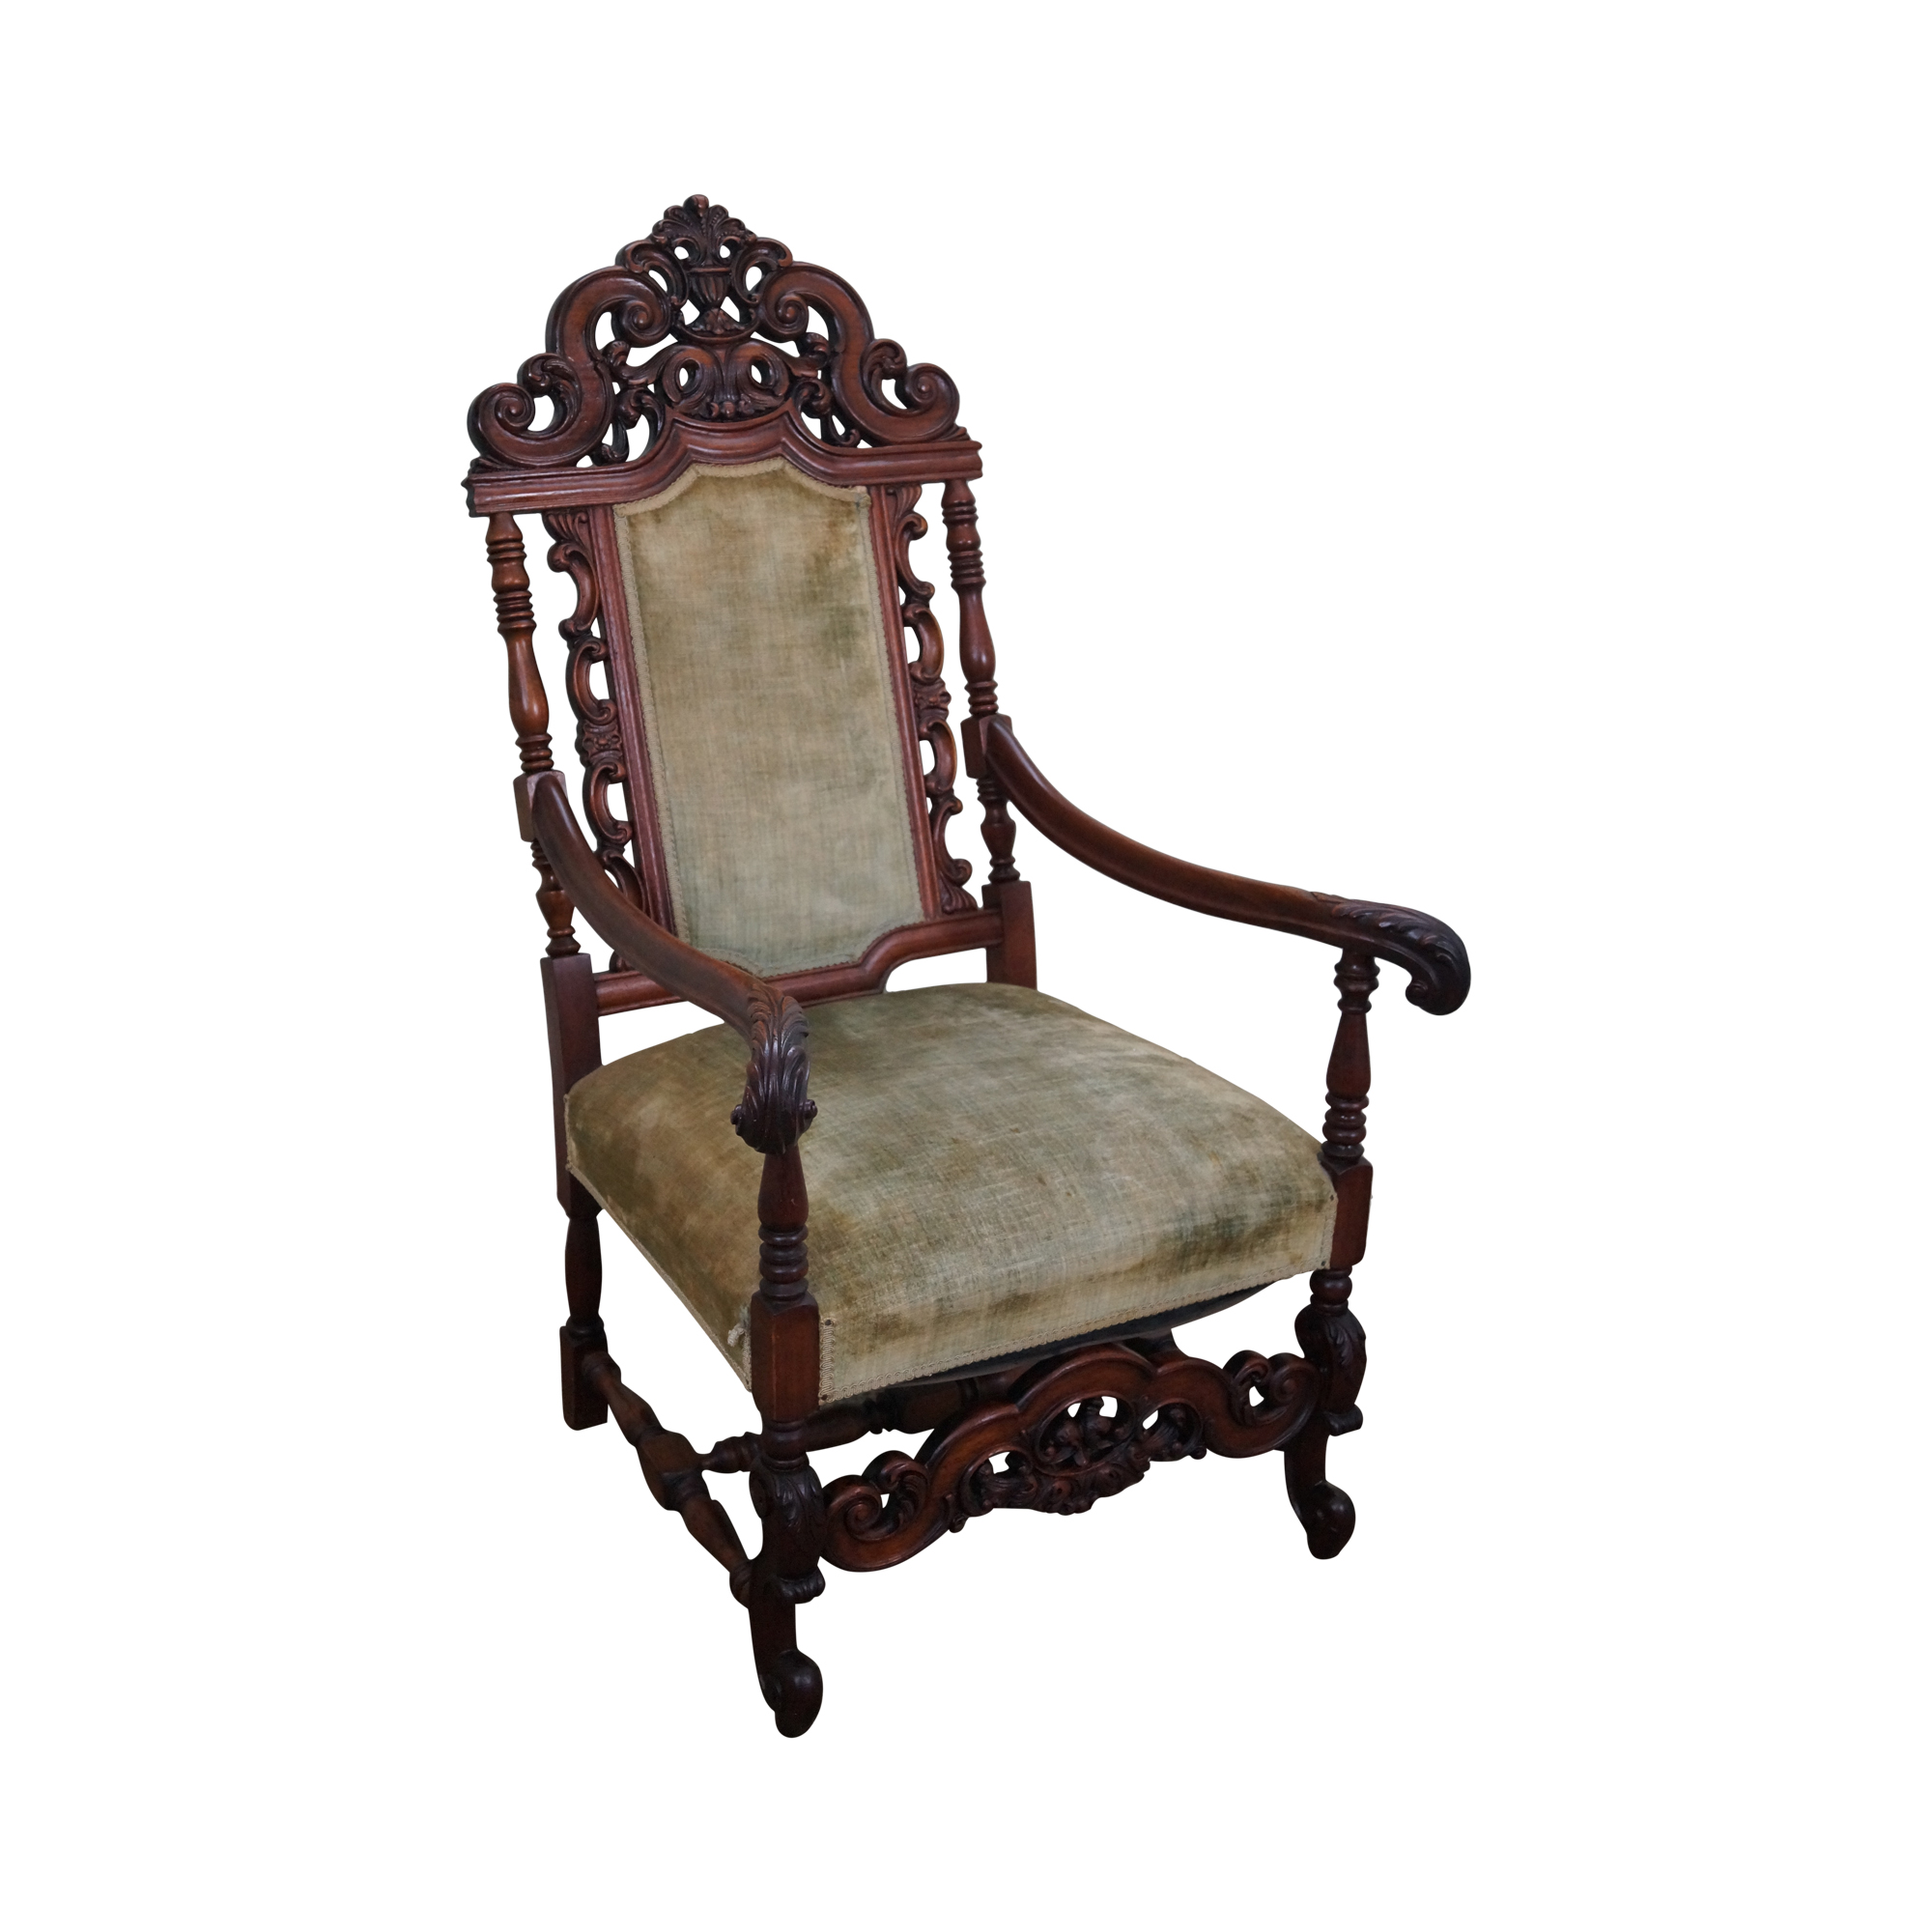 Antique 19th Century Heavily Carved Throne Chair